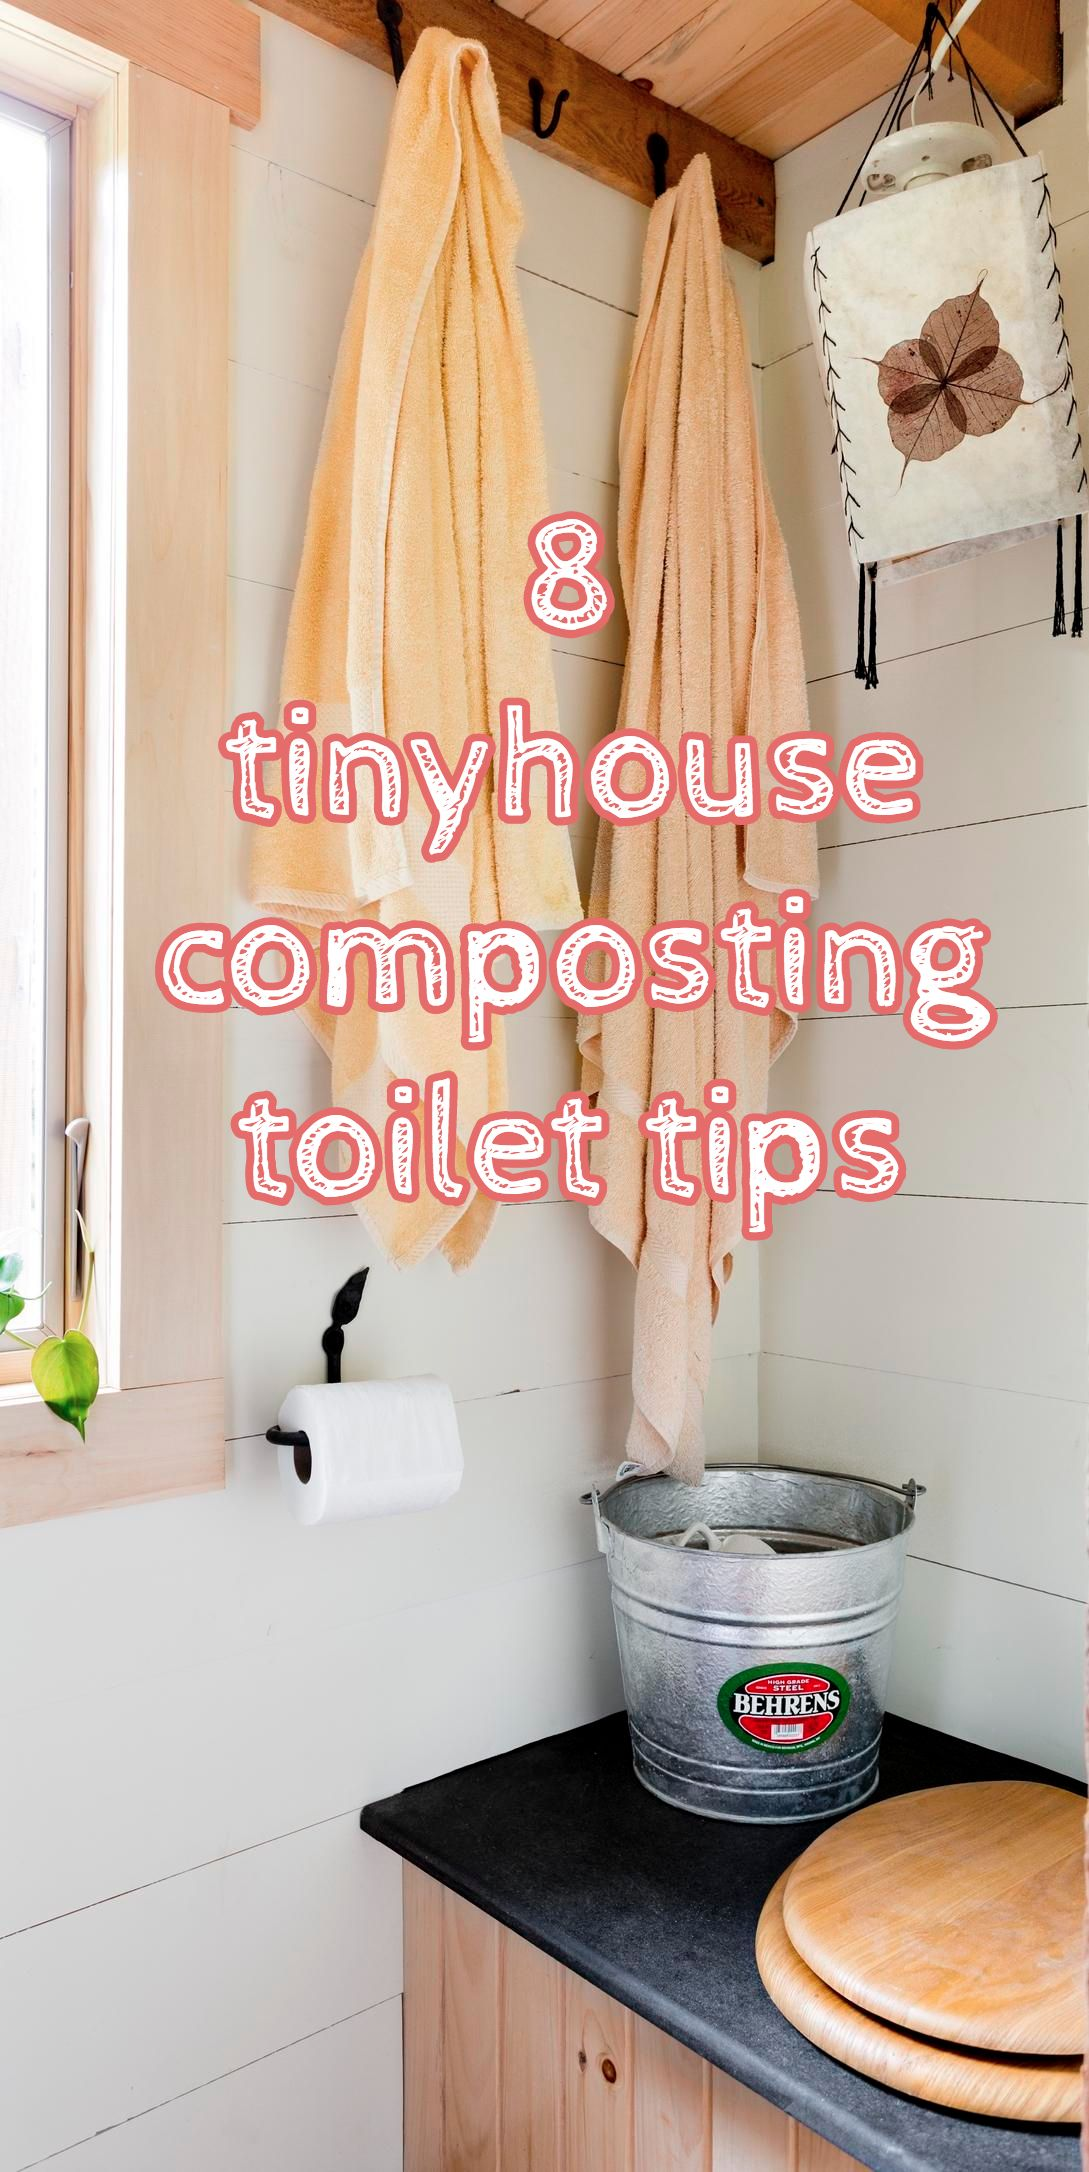 8 composting toilet tips for happy tiny house living tiny house life and style pinterest. Black Bedroom Furniture Sets. Home Design Ideas